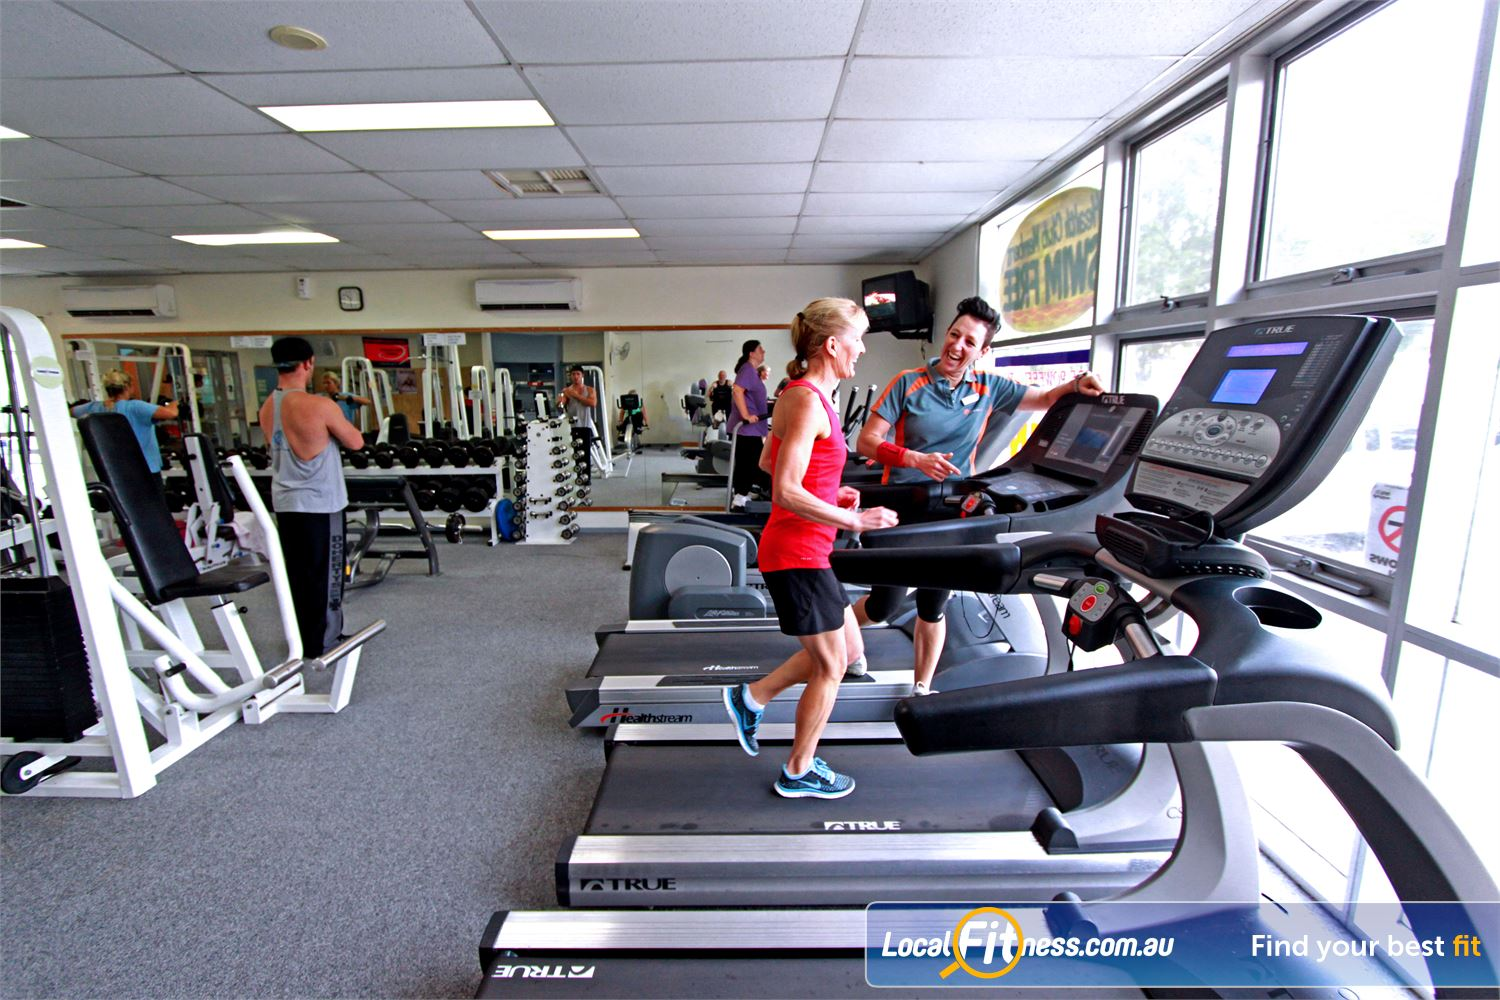 Yarra Recreation Centre Near Millgrove Yarra Junction gym instructors can help design a cardio program for weight-loss.